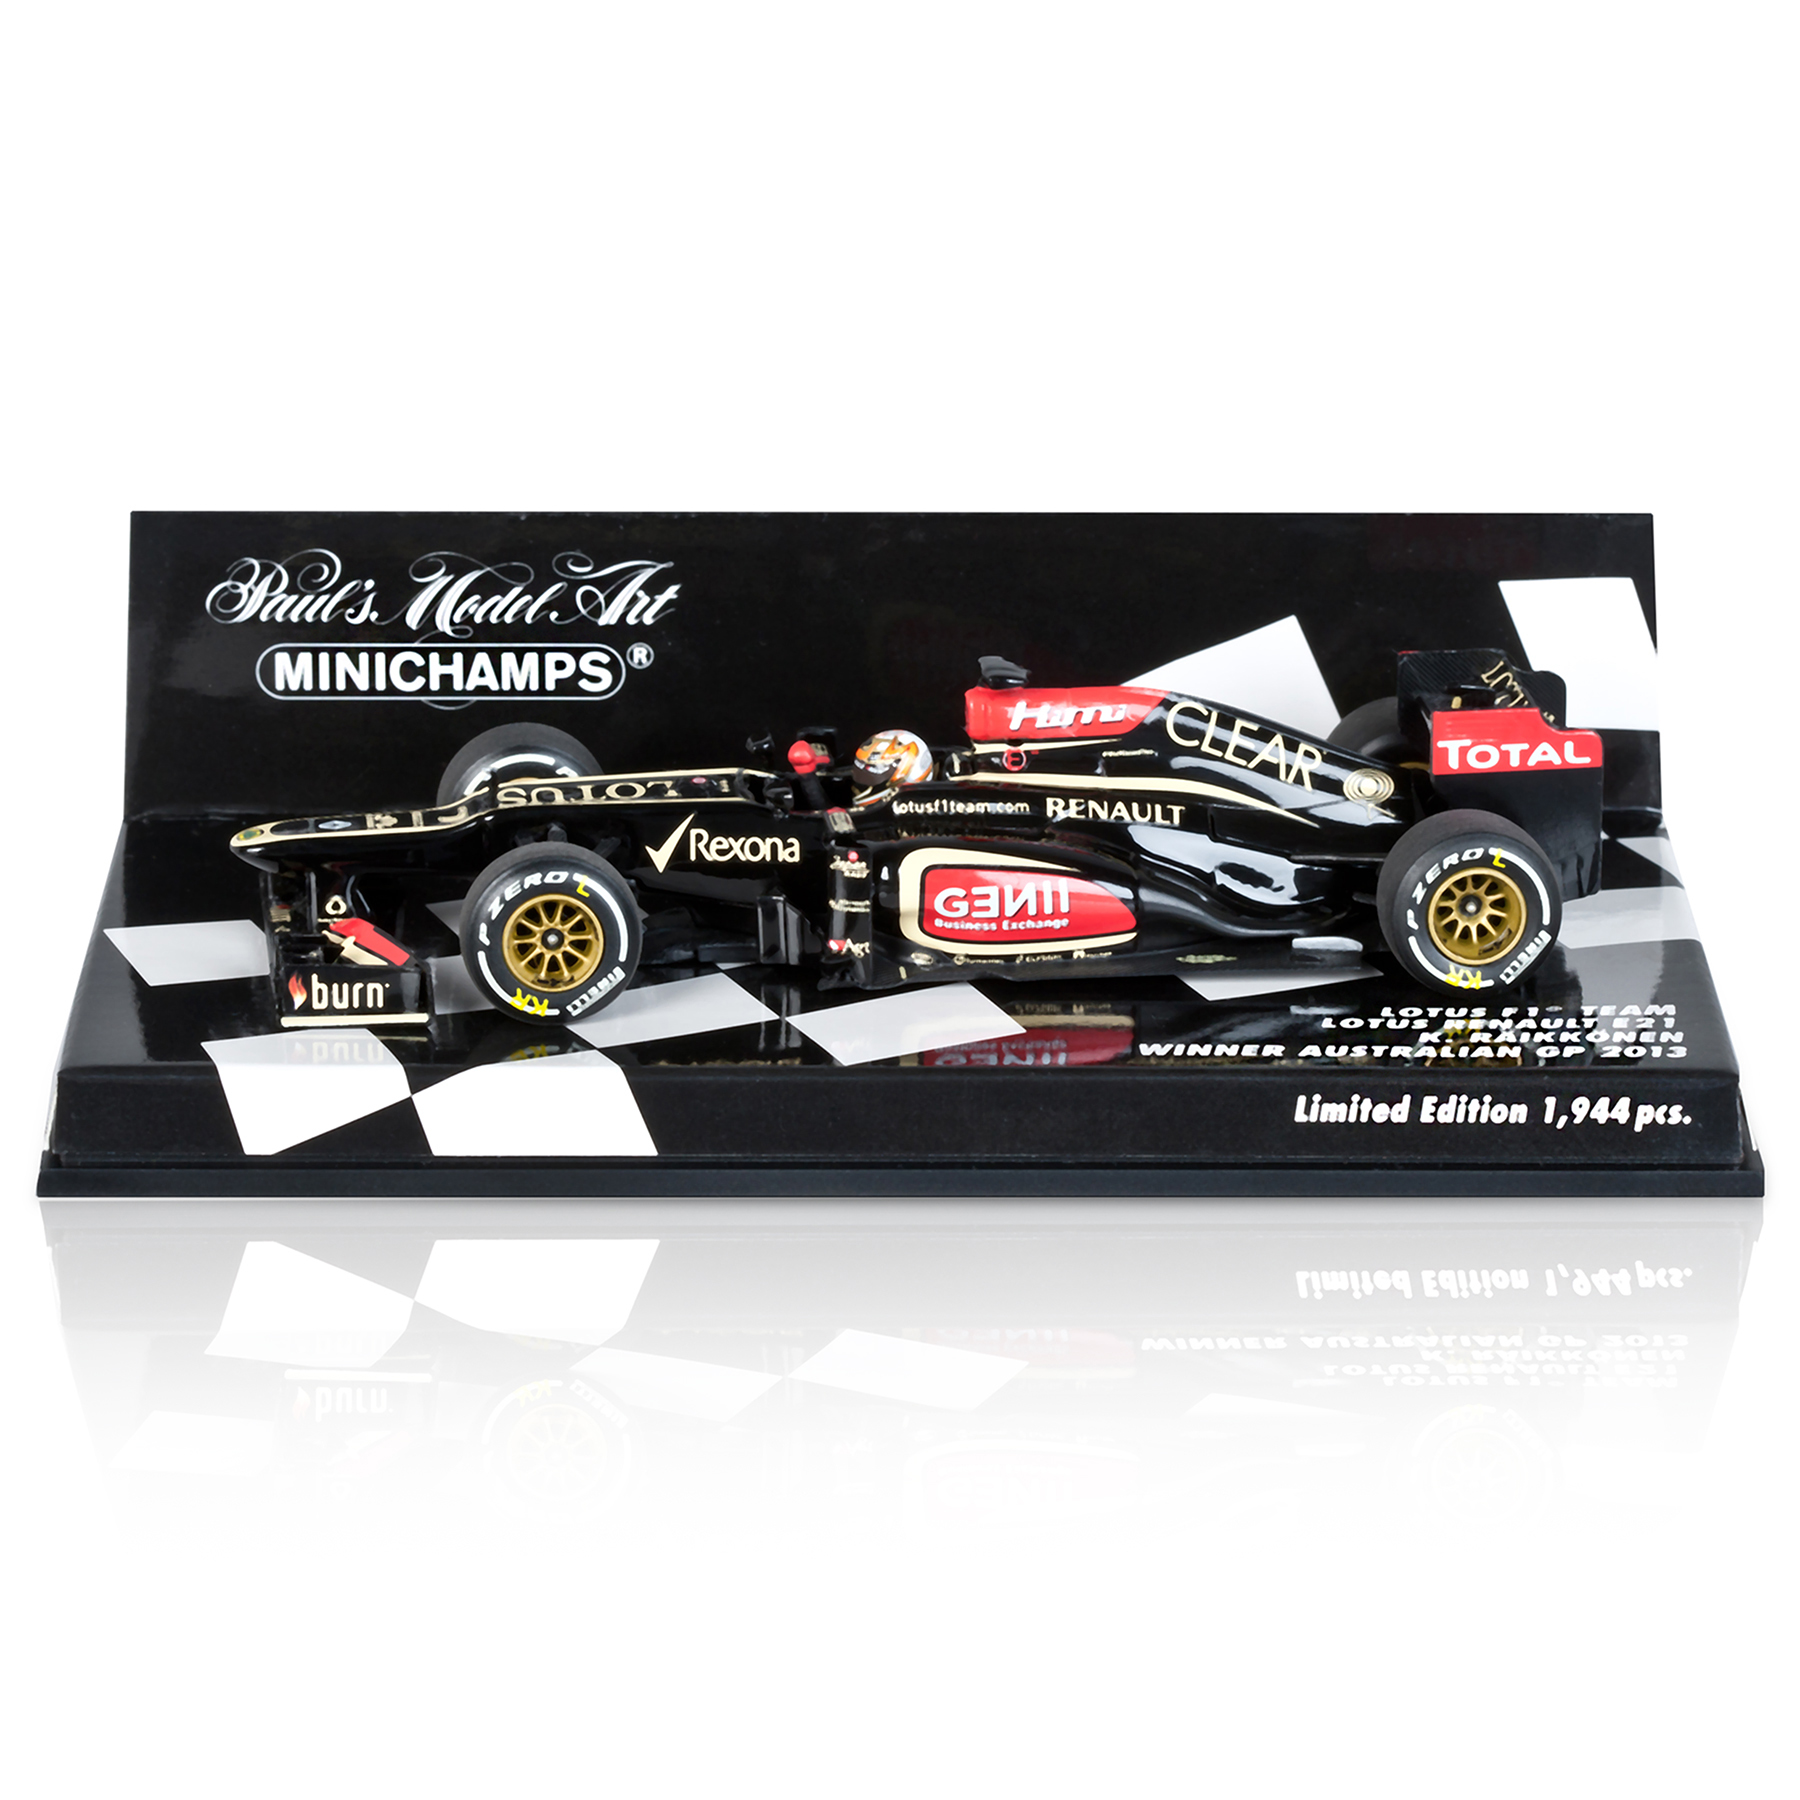 Lotus F1 Team Renault E21 Kimi Raikkonen Winner Australian GP 2013 - Limited Edition 1:43 Scale